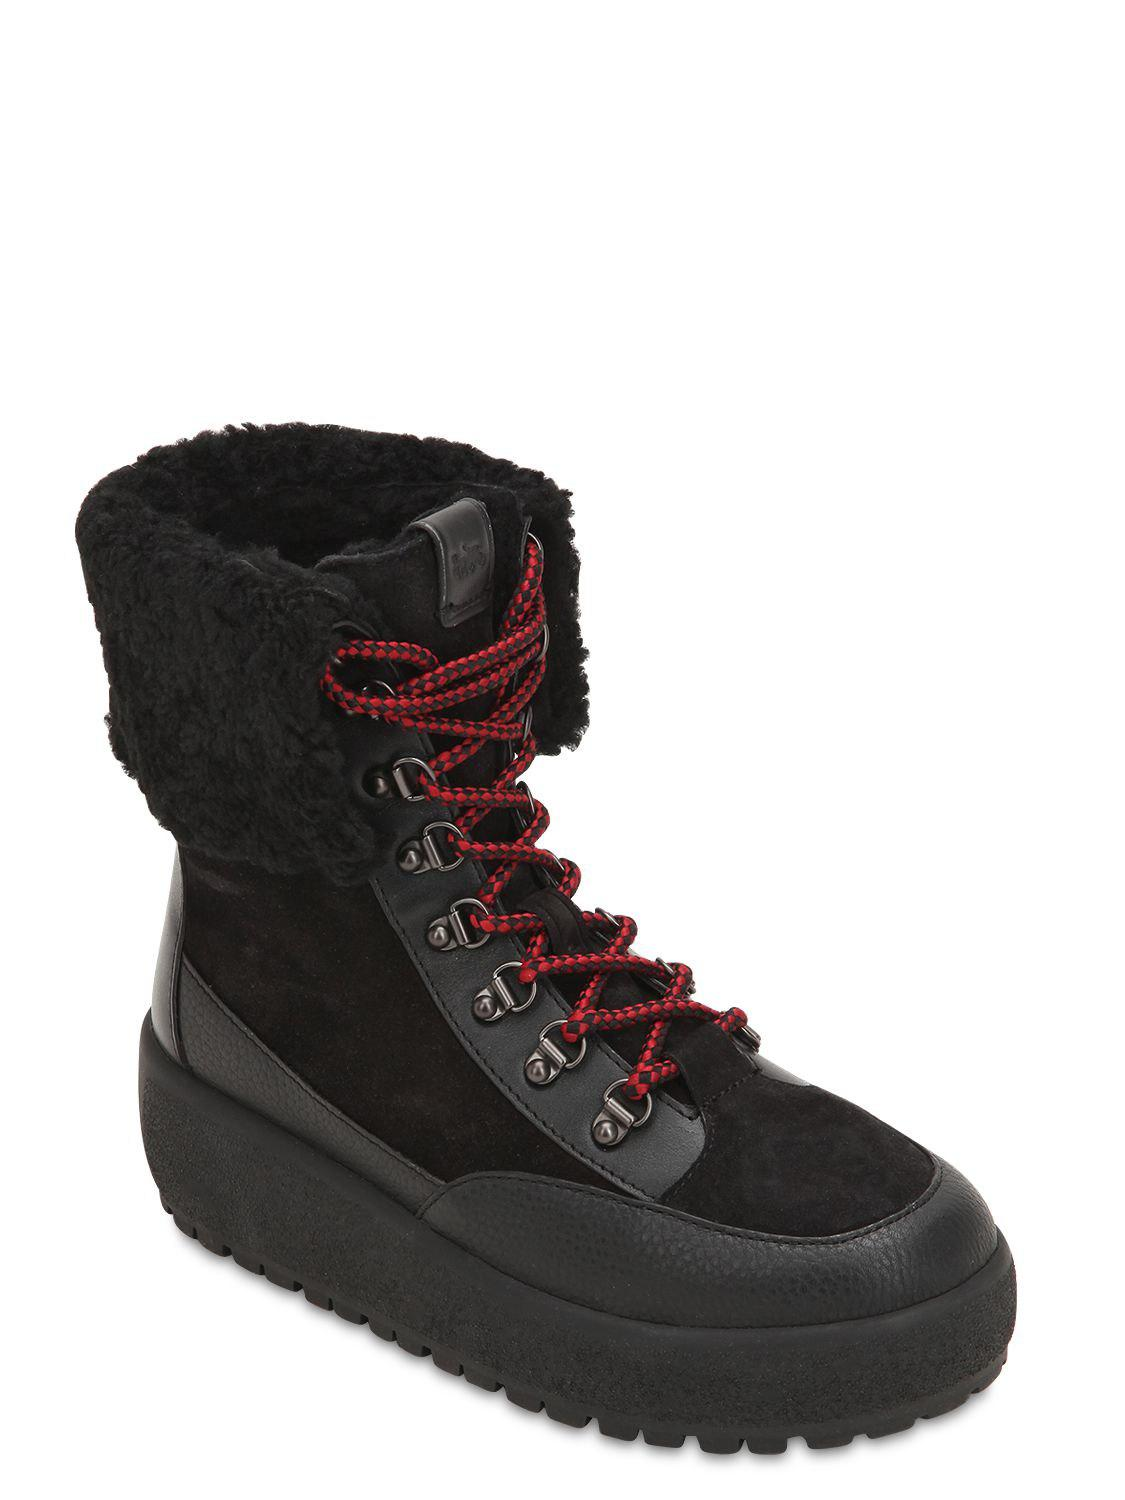 b863fc83811d7 COACH - Black 40mm Tyler Suede   Leather Hiking Boots - Lyst. View  fullscreen